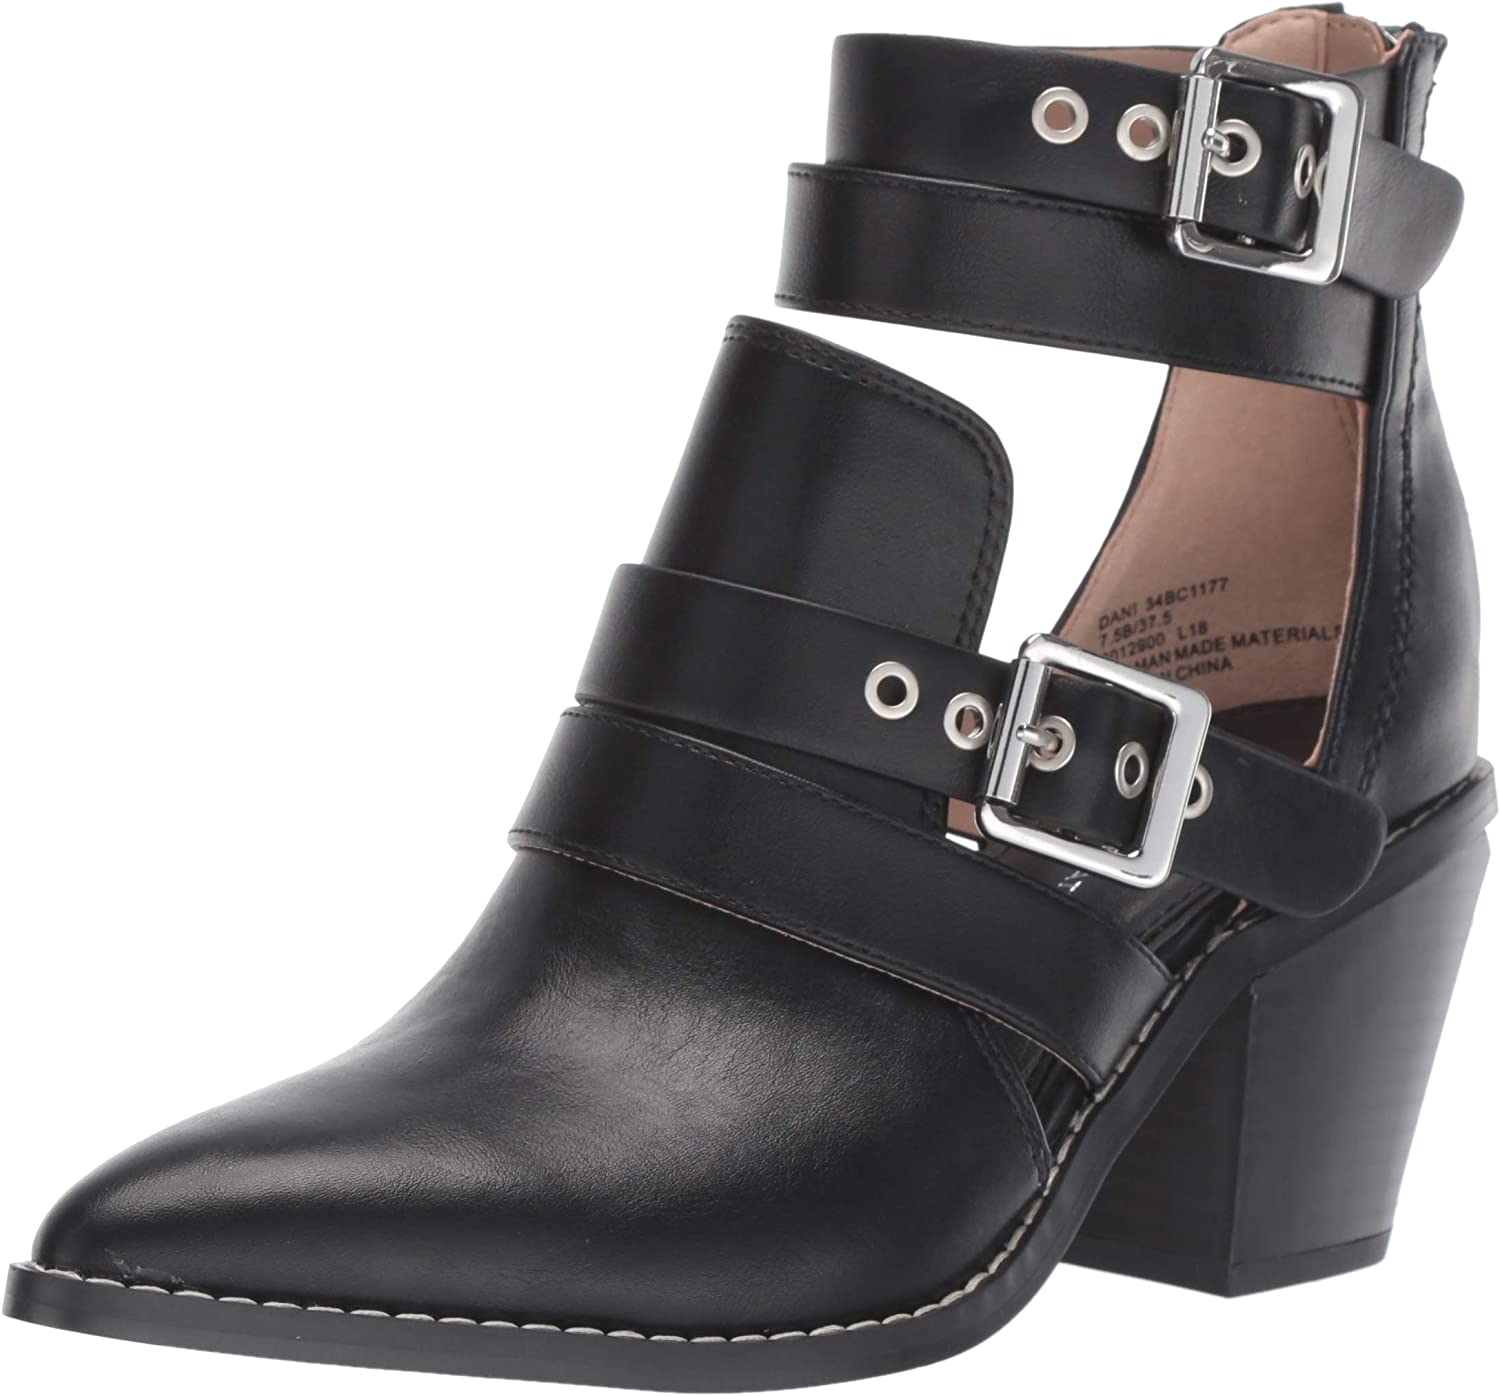 BCBGeneration Womens Dani Bootie Ankle Boot